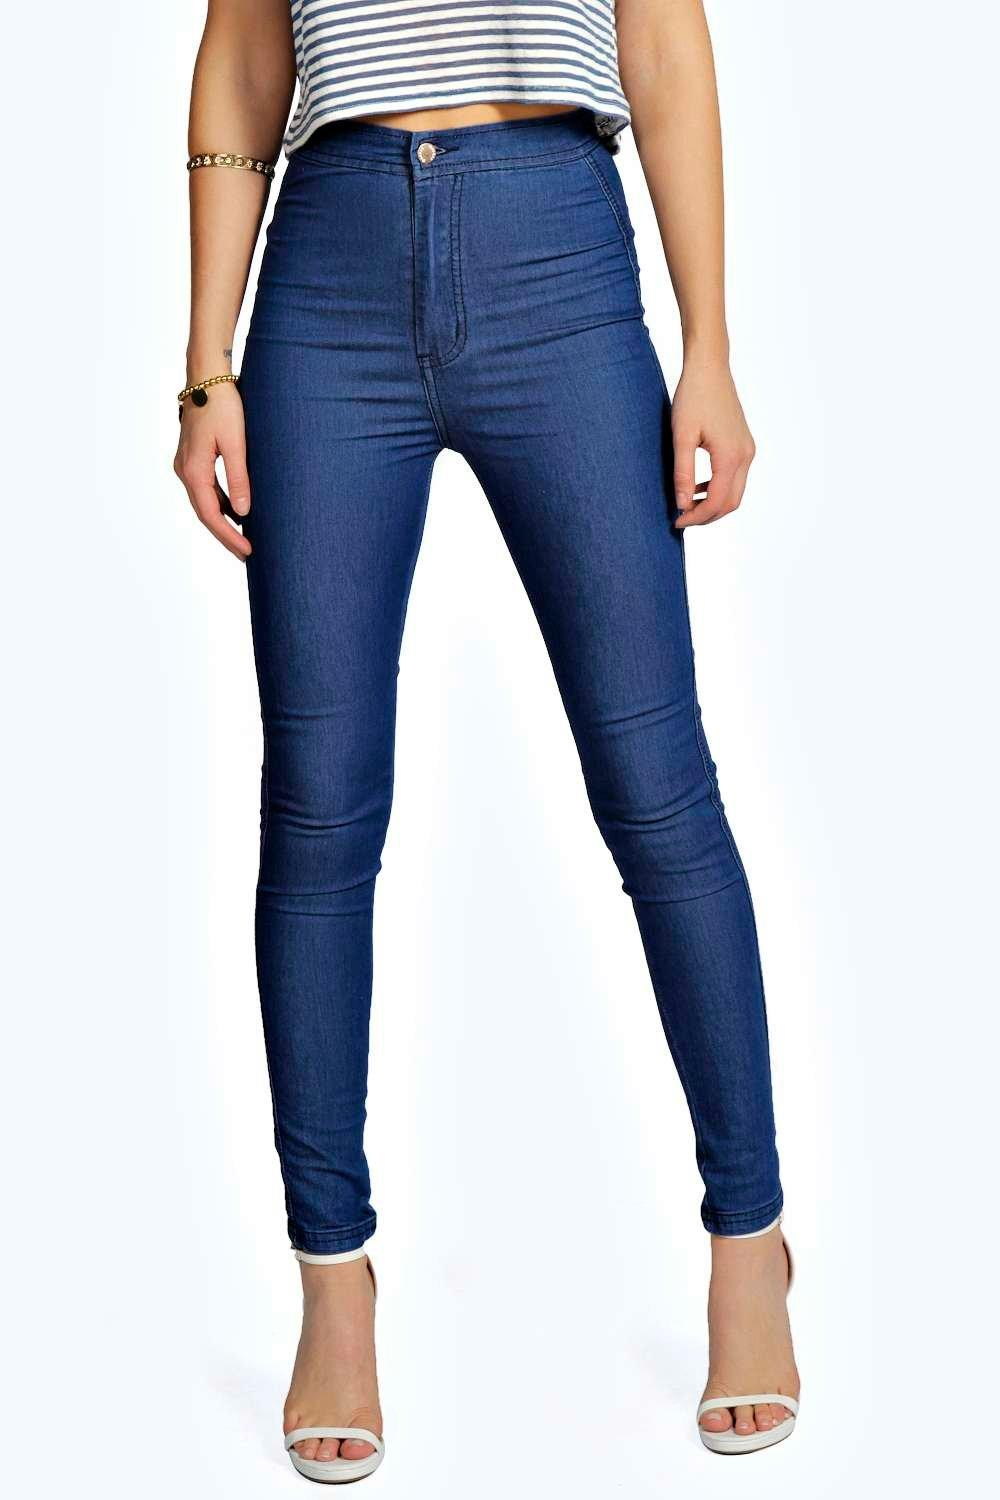 Macy High Waisted Skinny Jeans at boohoo.com